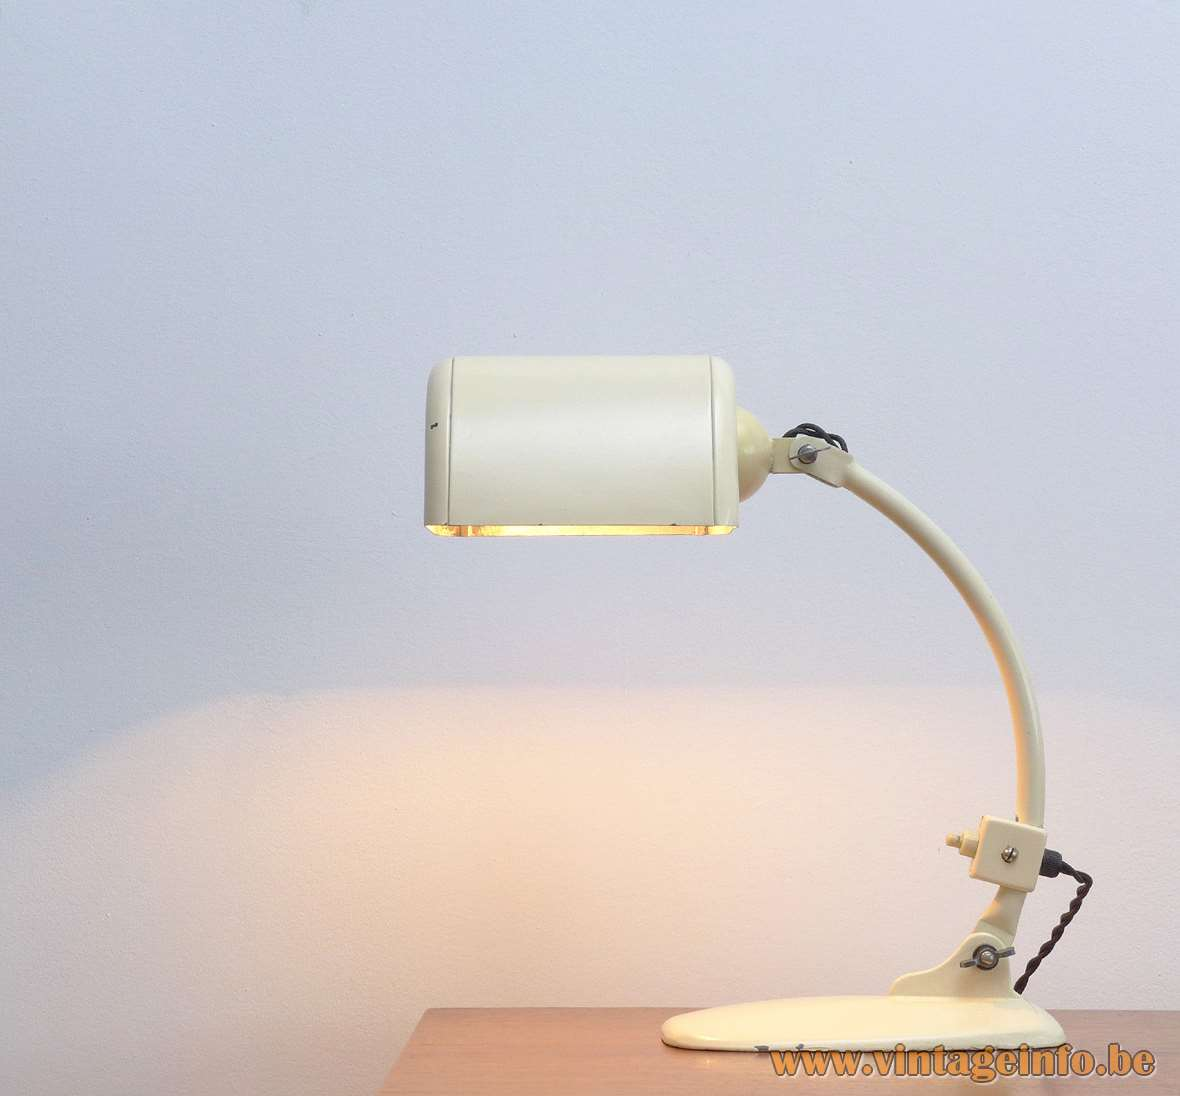 Molitor Novum Desk Lamp cast iron curved rod 1930s Bauhaus Kurt Zeisse Elektro-Industrie Berlin Germany